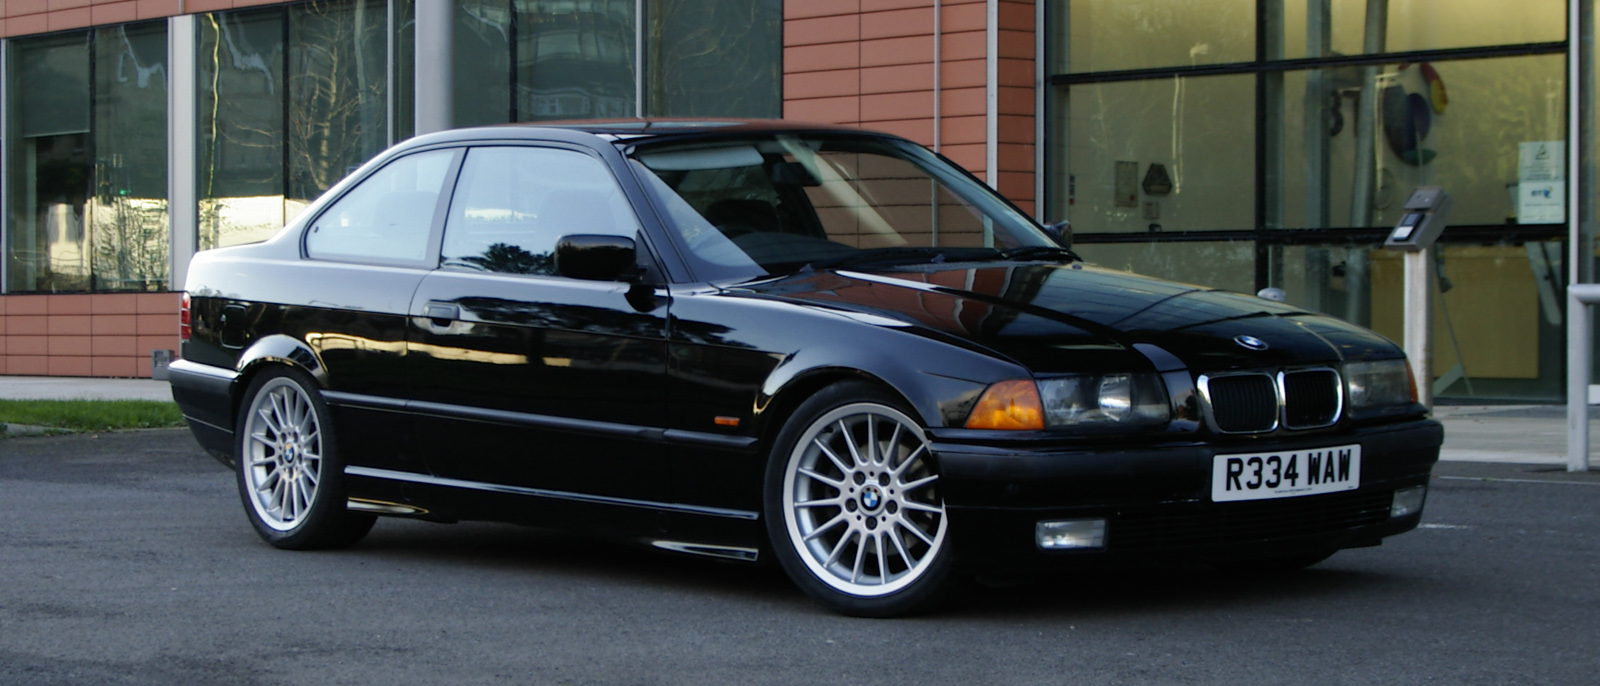 Bmw E30 323 >> 1992 Bmw M3 coupe (e36) – pictures, information and specs - Auto-Database.com